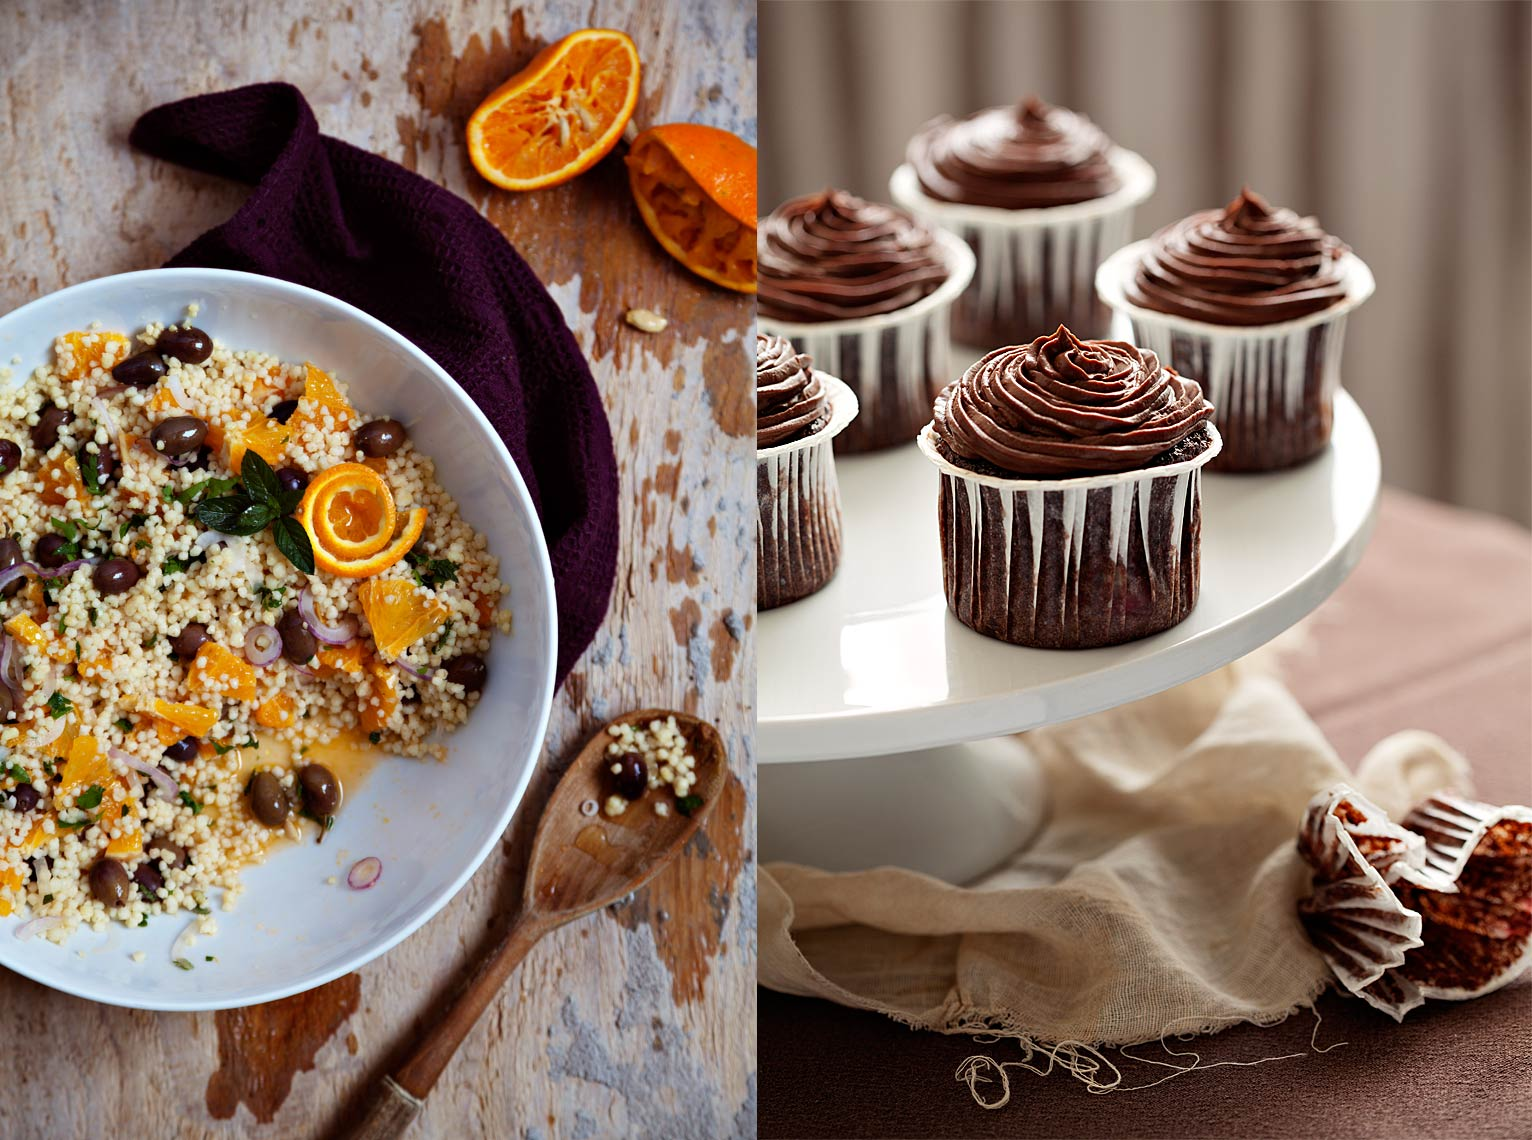 cous cous and cupcakes